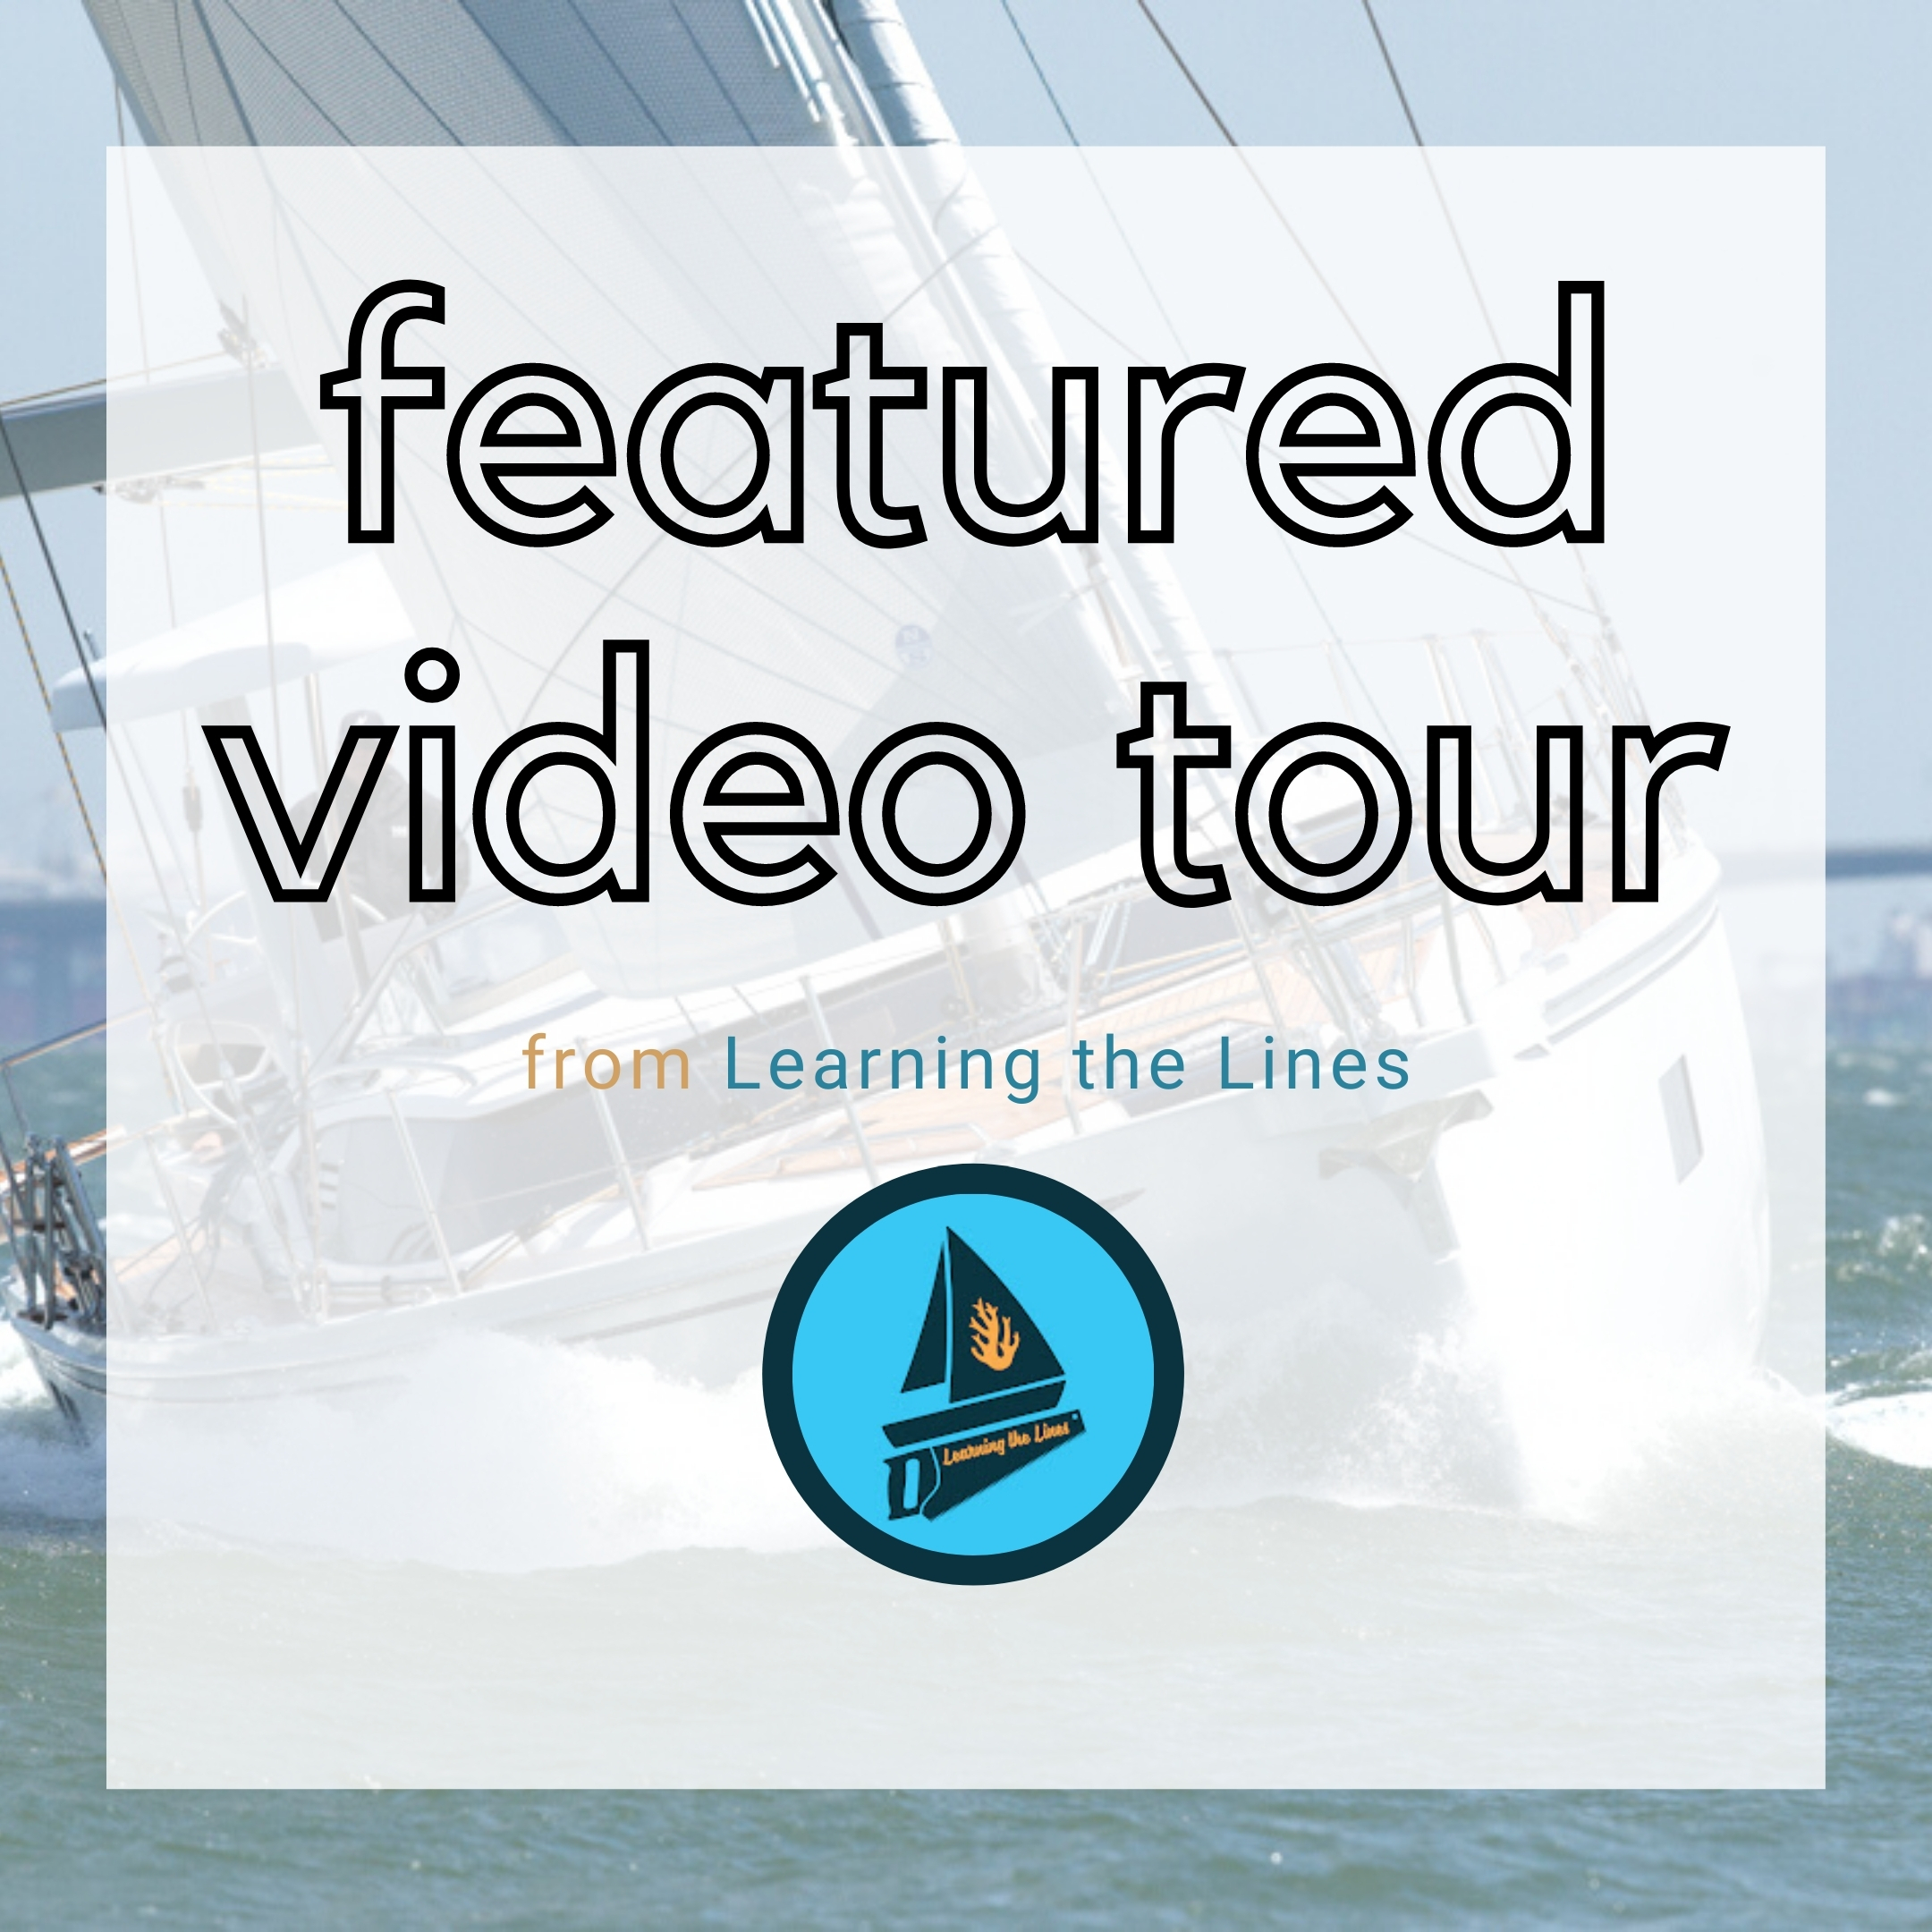 Featured Video Tour by Learning the Lines